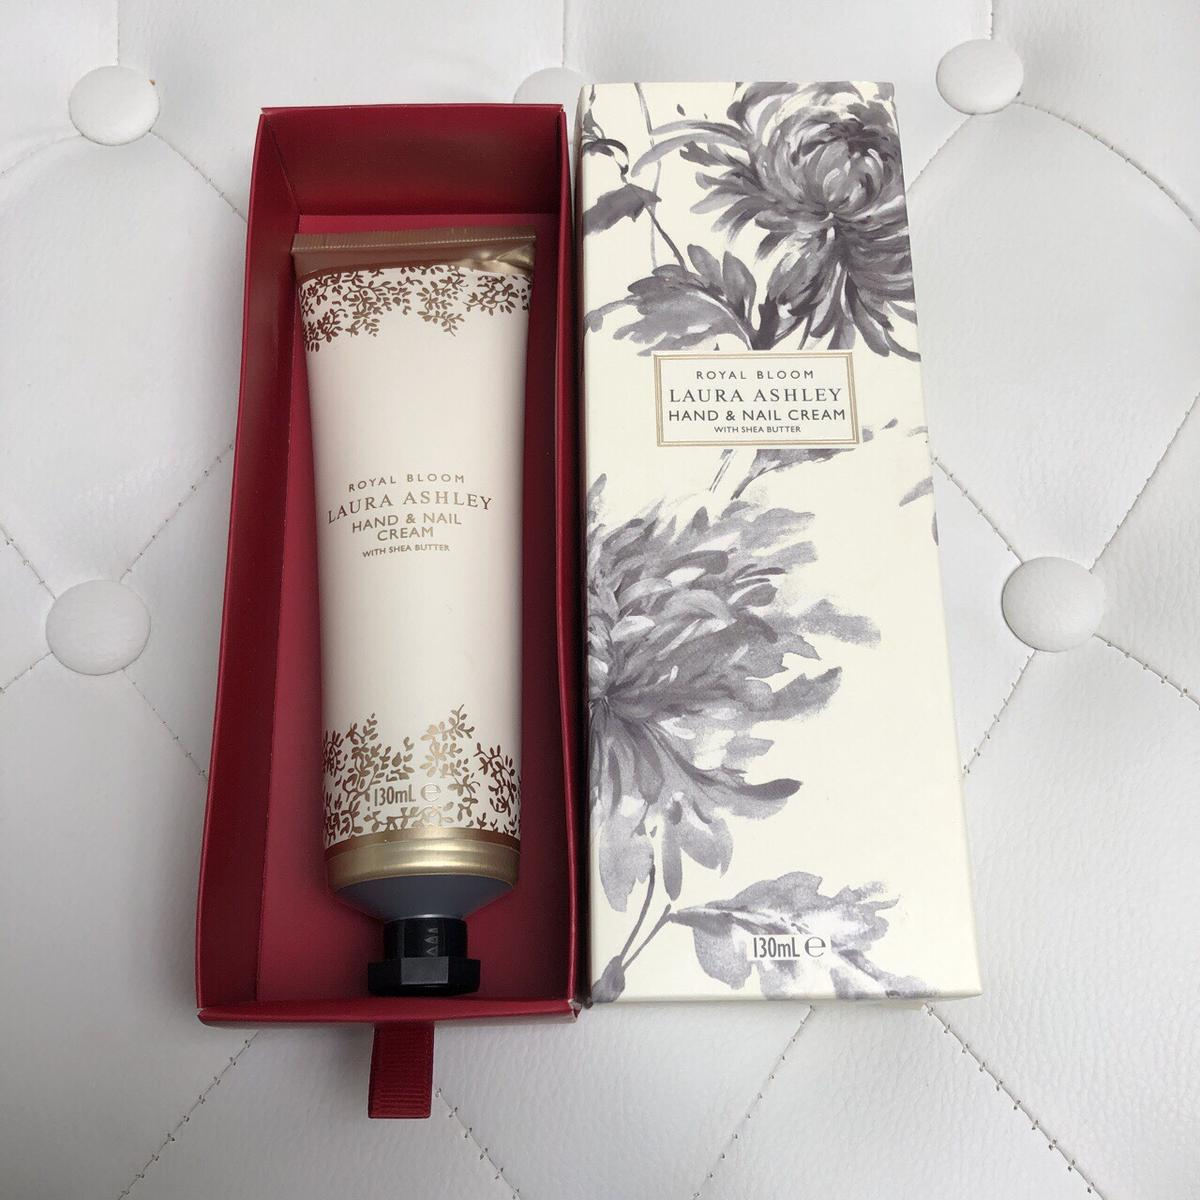 Laura Ashley Hand and nail cream in L11 Liverpool for £4.00